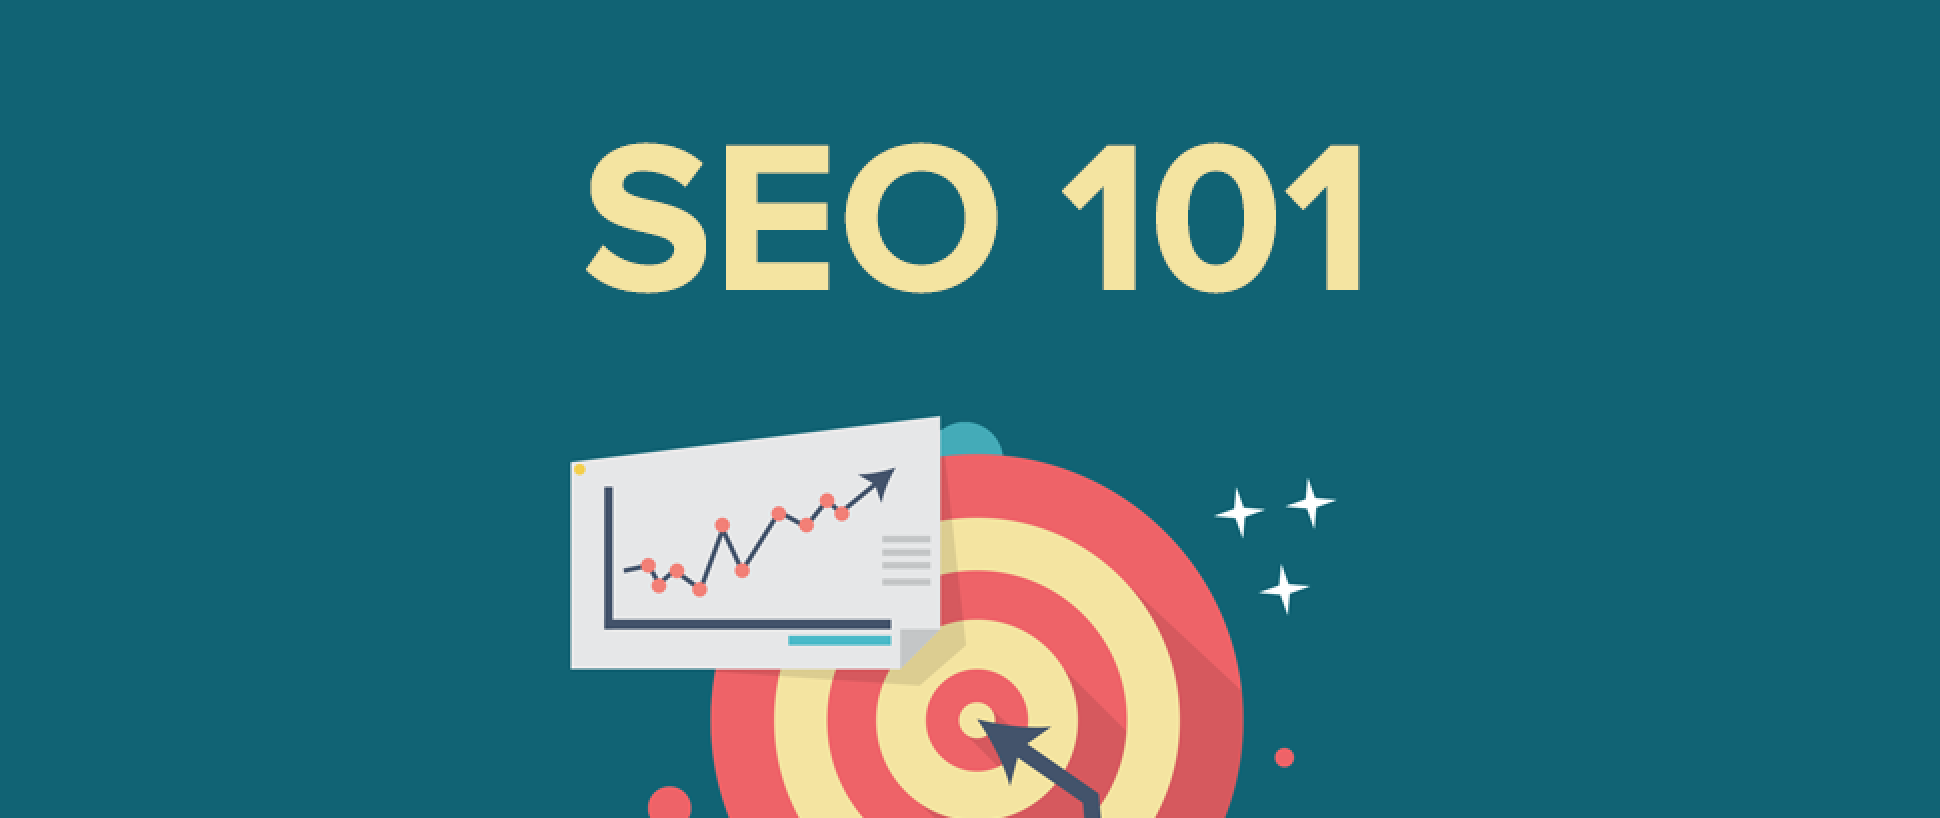 SEO 101: 4 SEO common terms for beginners